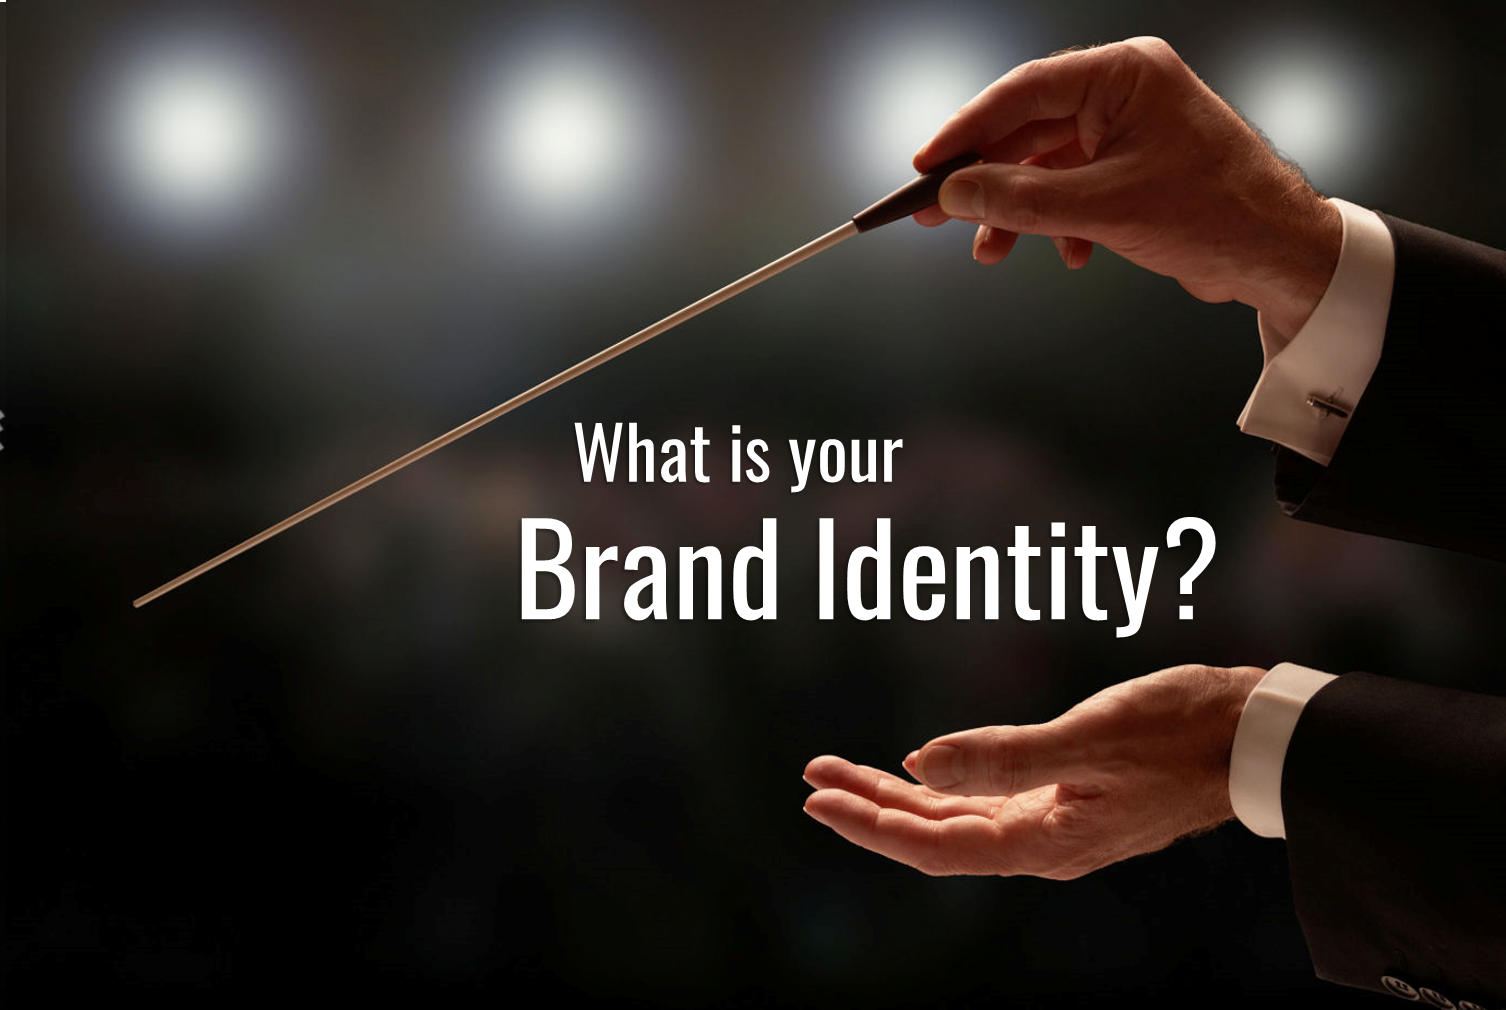 Workshop How to Build a High-end Brand? - Image source: 18percentgrey/Shutterstock.